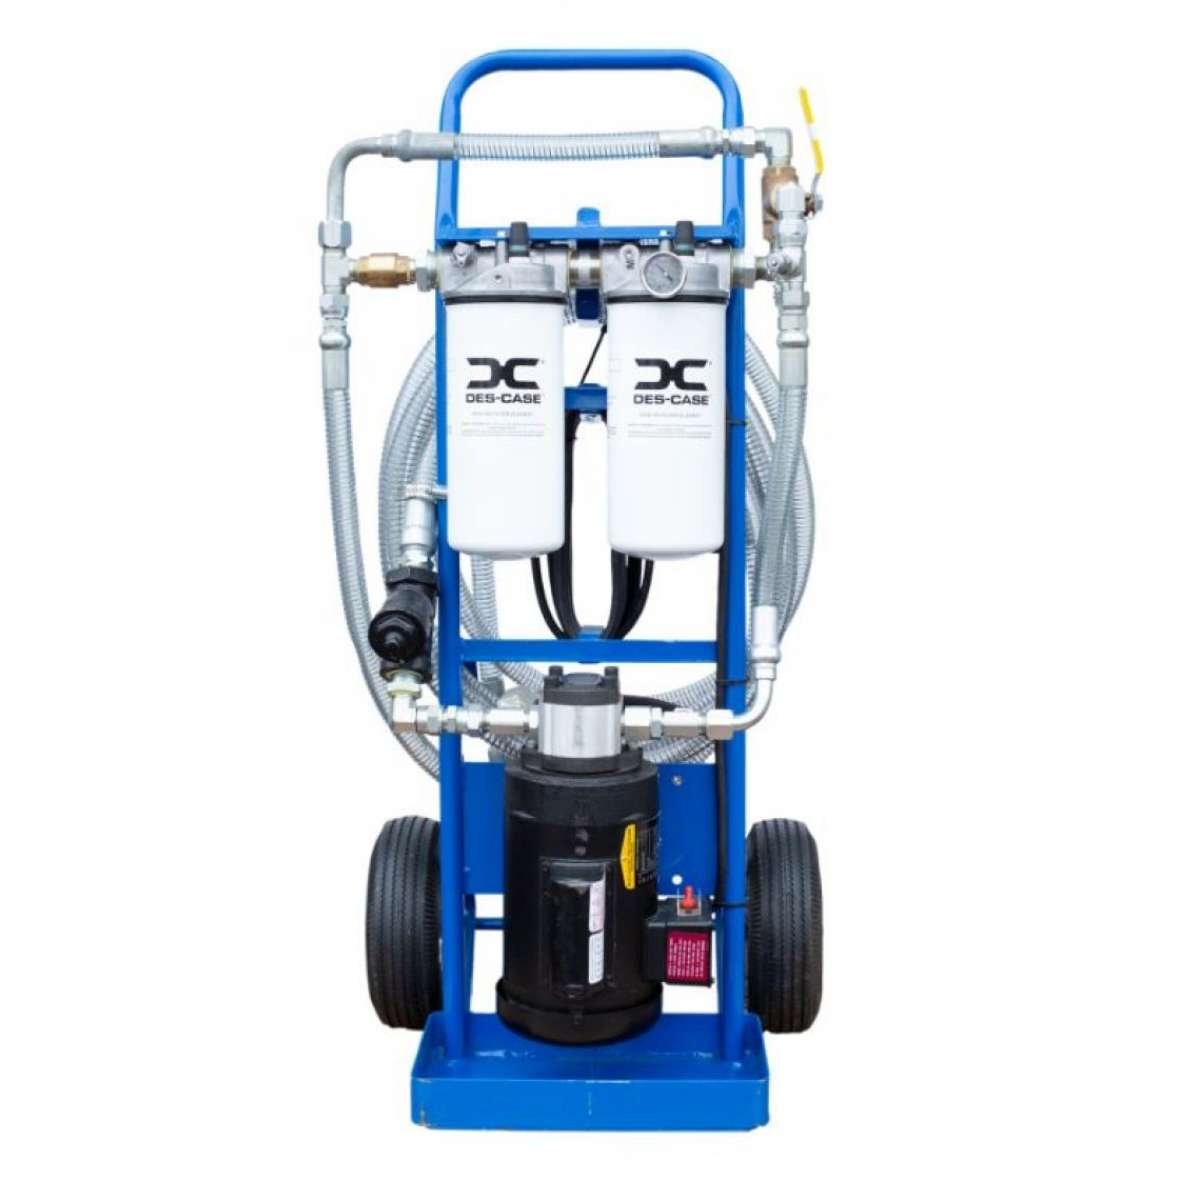 FlowGuard Filter Cart - Best for Hydraulic Oil